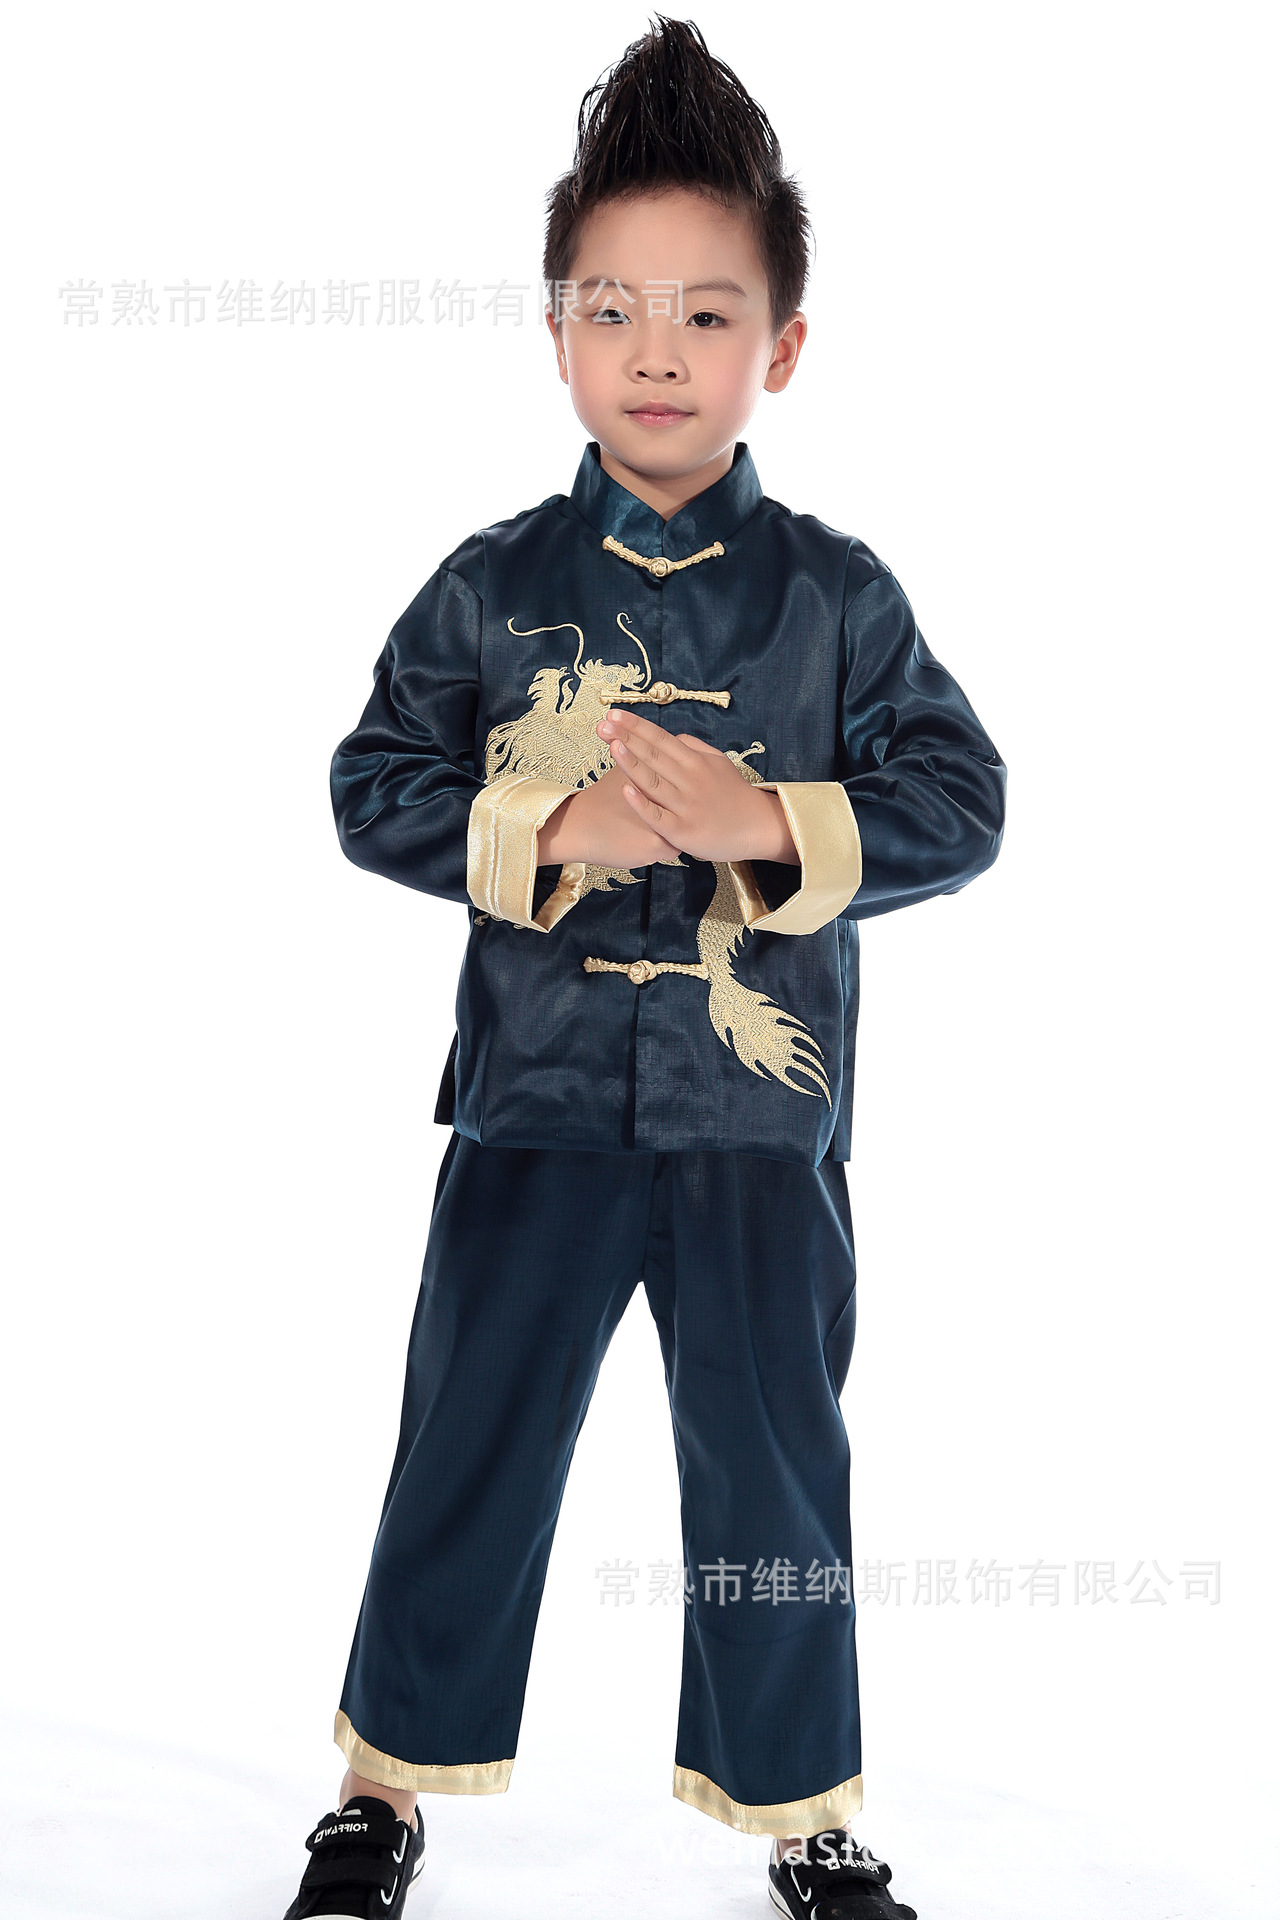 Children Chinese Costume Spring And Autumn Traditional Chinese Garments For Boys Tops New Year Service Chinese Style Formal Dres